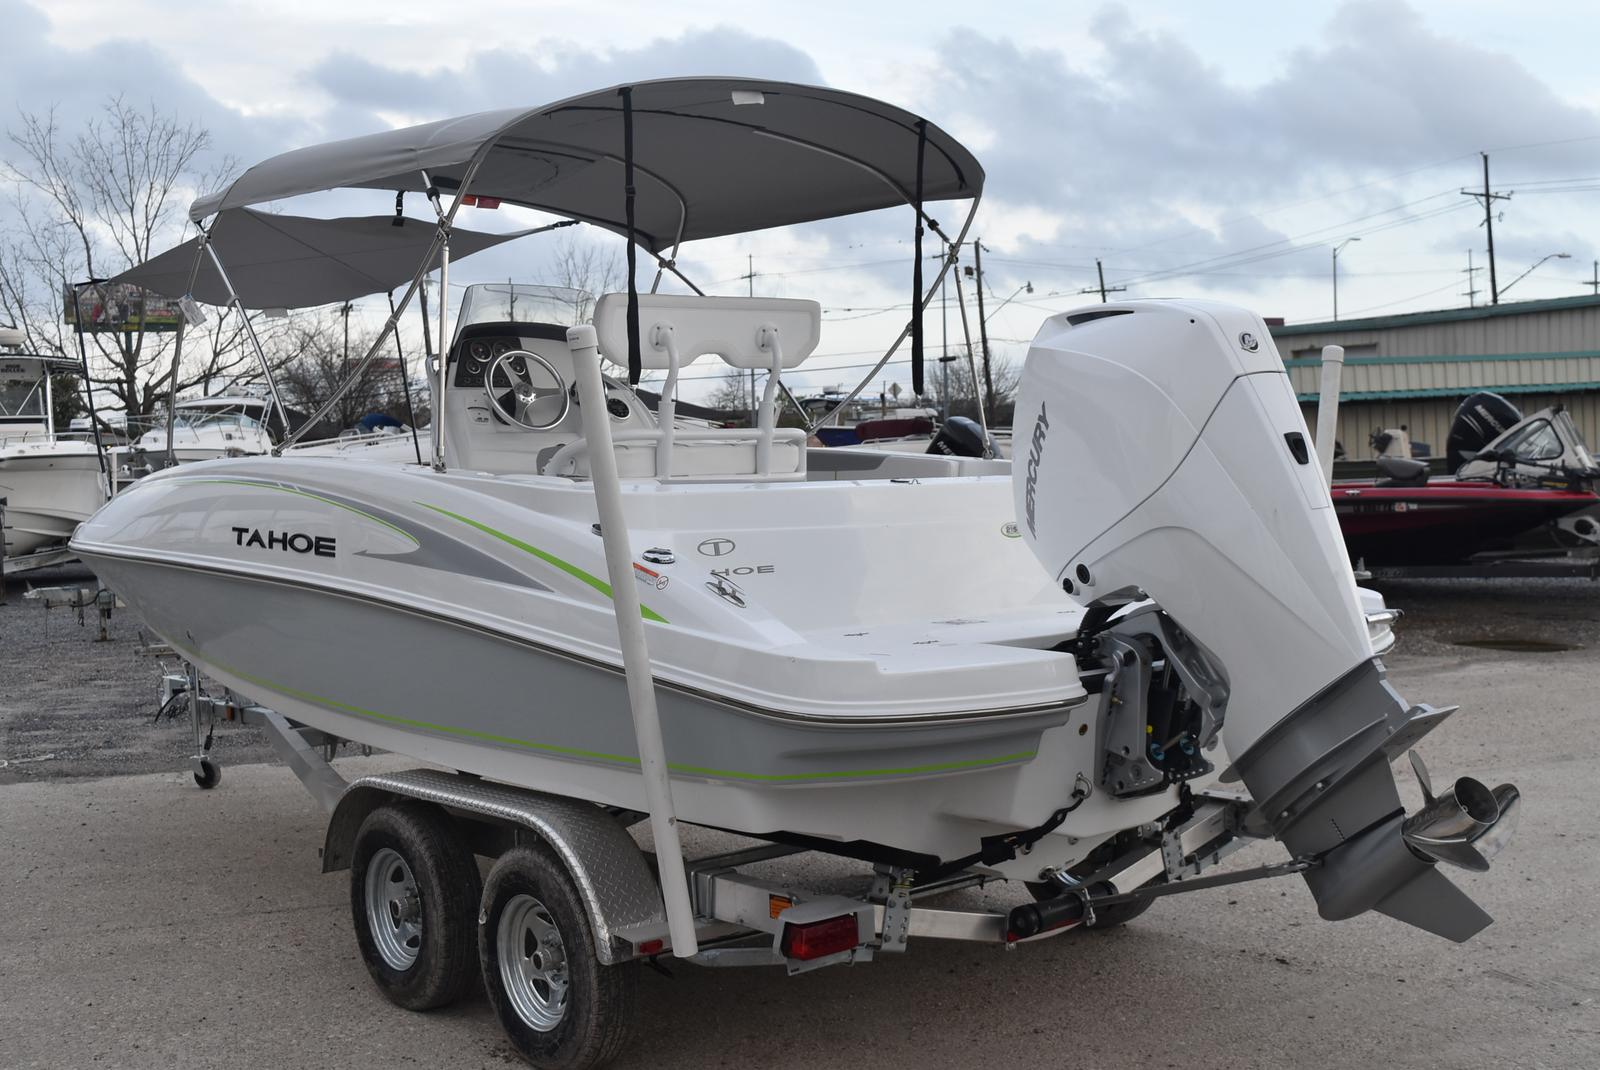 2021 Tahoe boat for sale, model of the boat is 2150cc & Image # 11 of 17